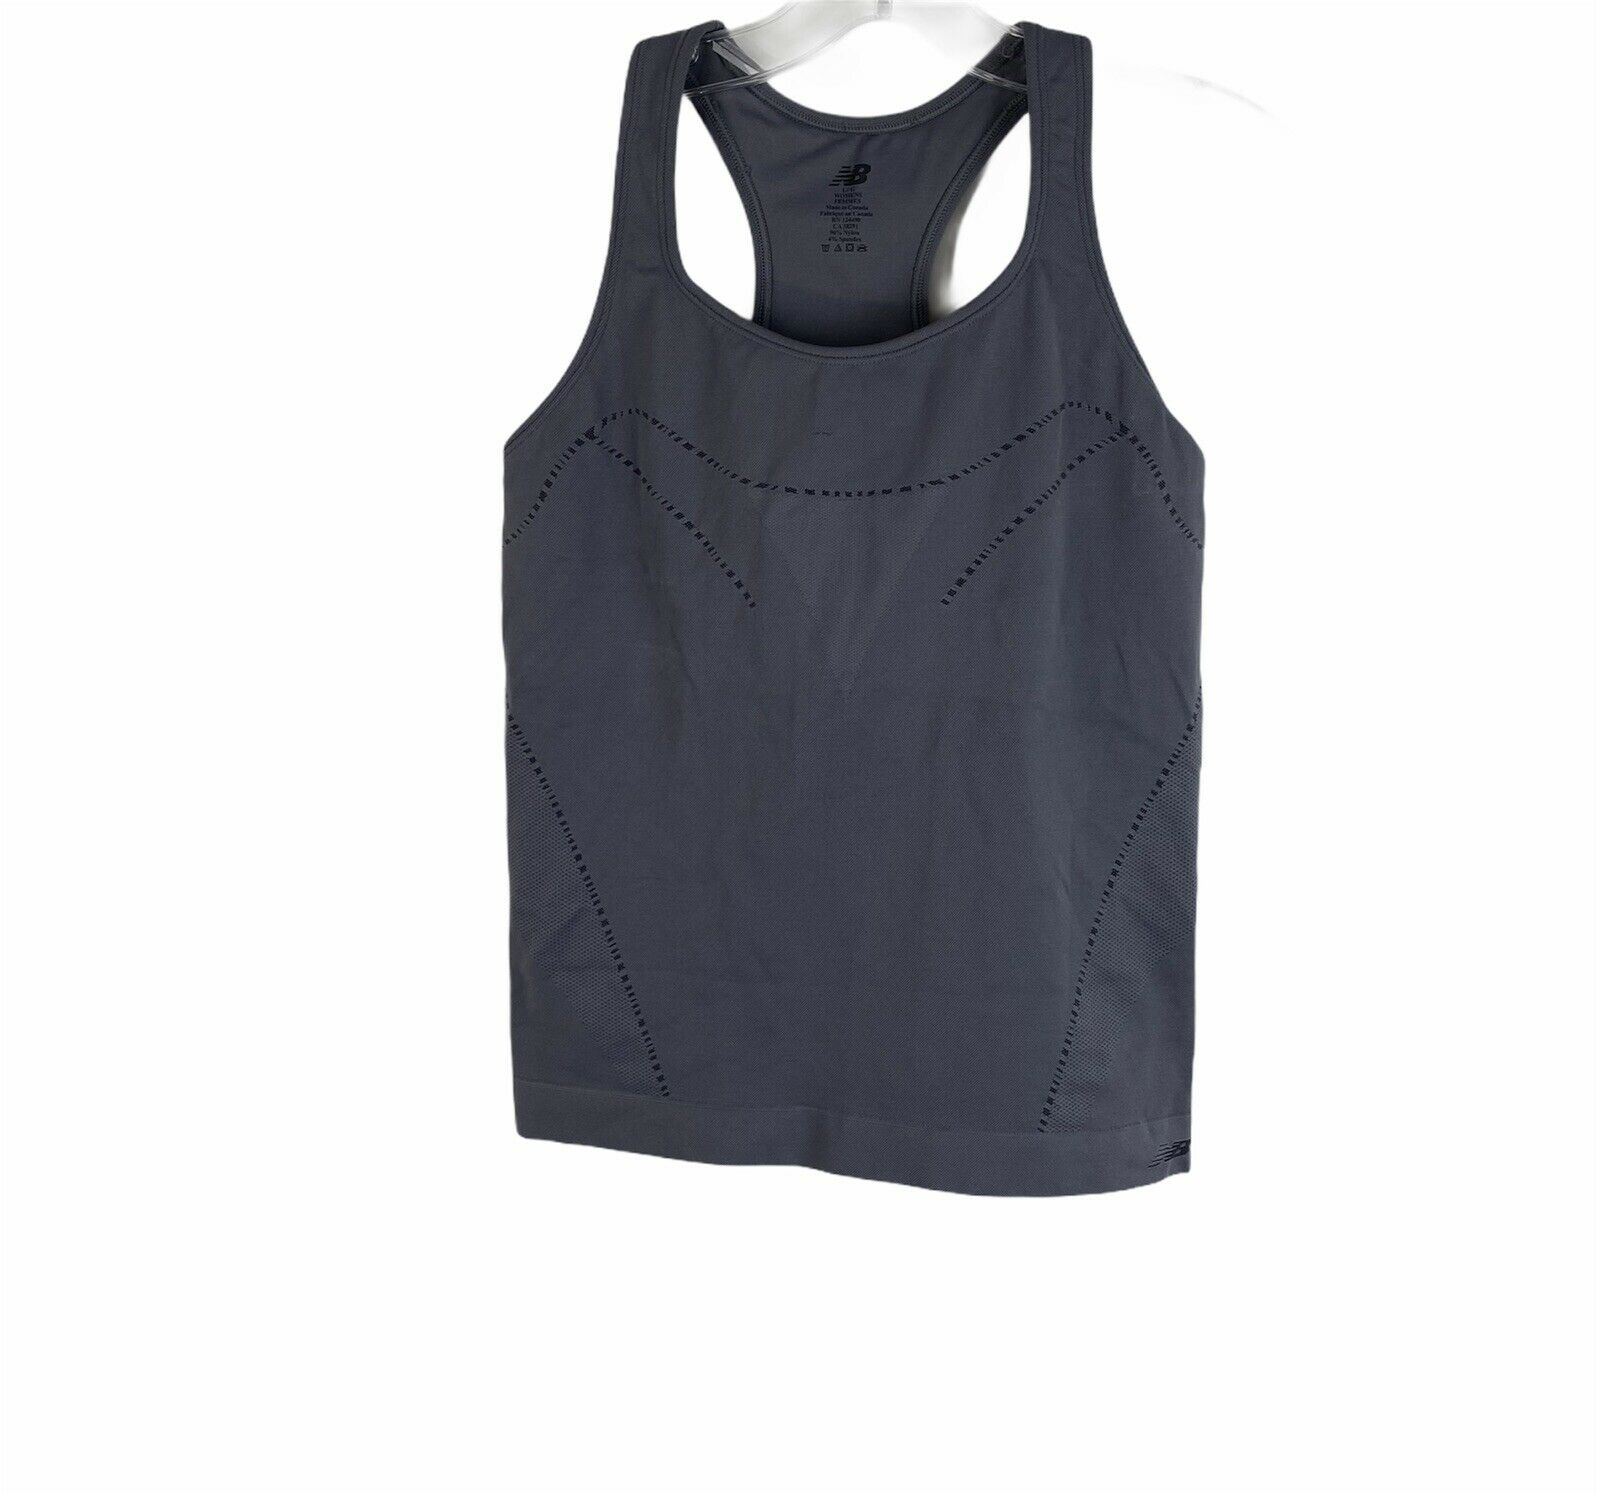 New Balance Gray Seamless Scoop Neck Athletic Tank Top Stretch Womens Size Large